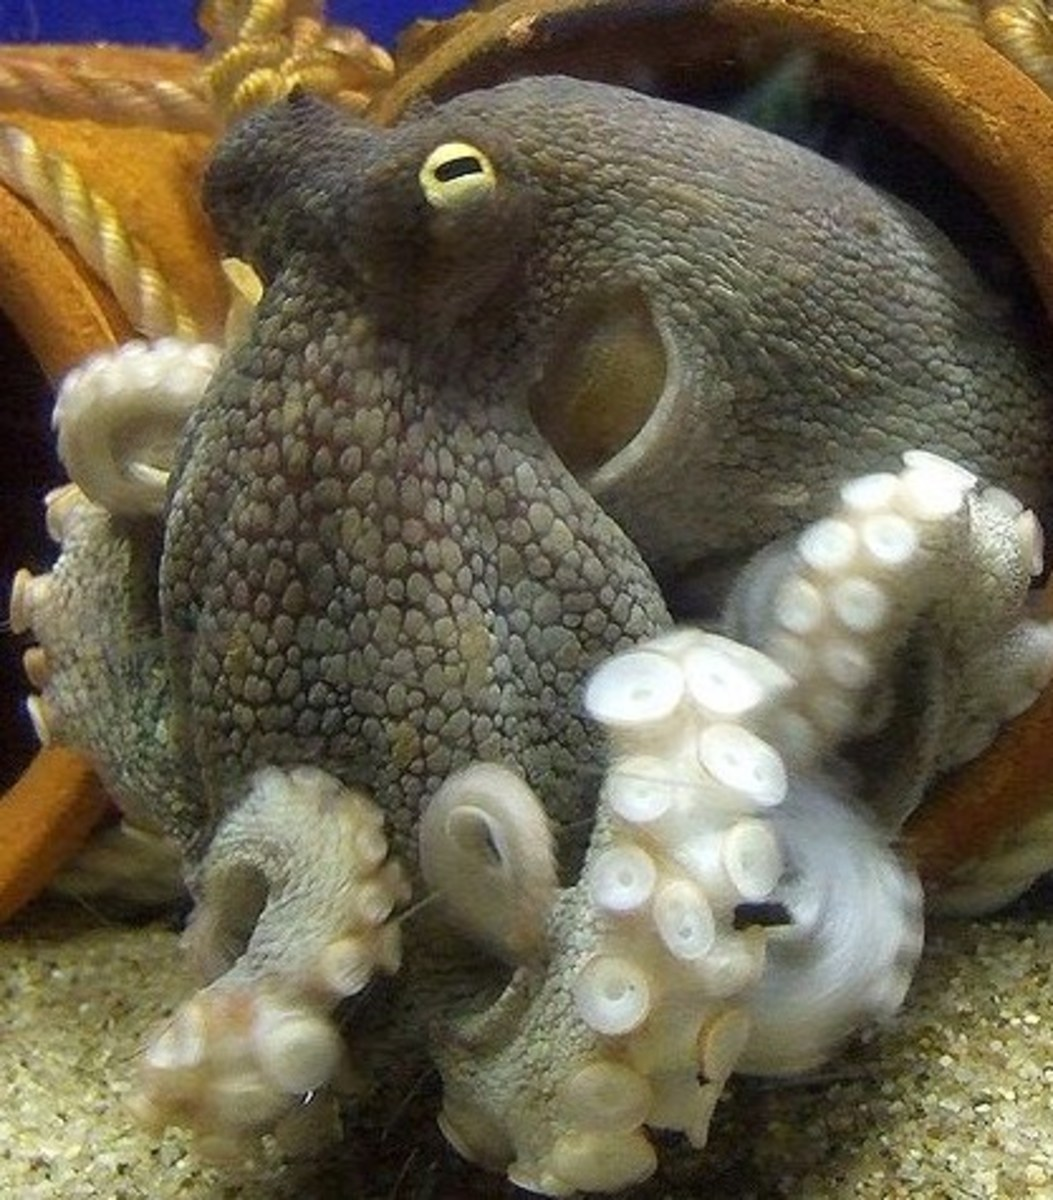 The octopus is a mollusk and considered the smartest invertebrate.